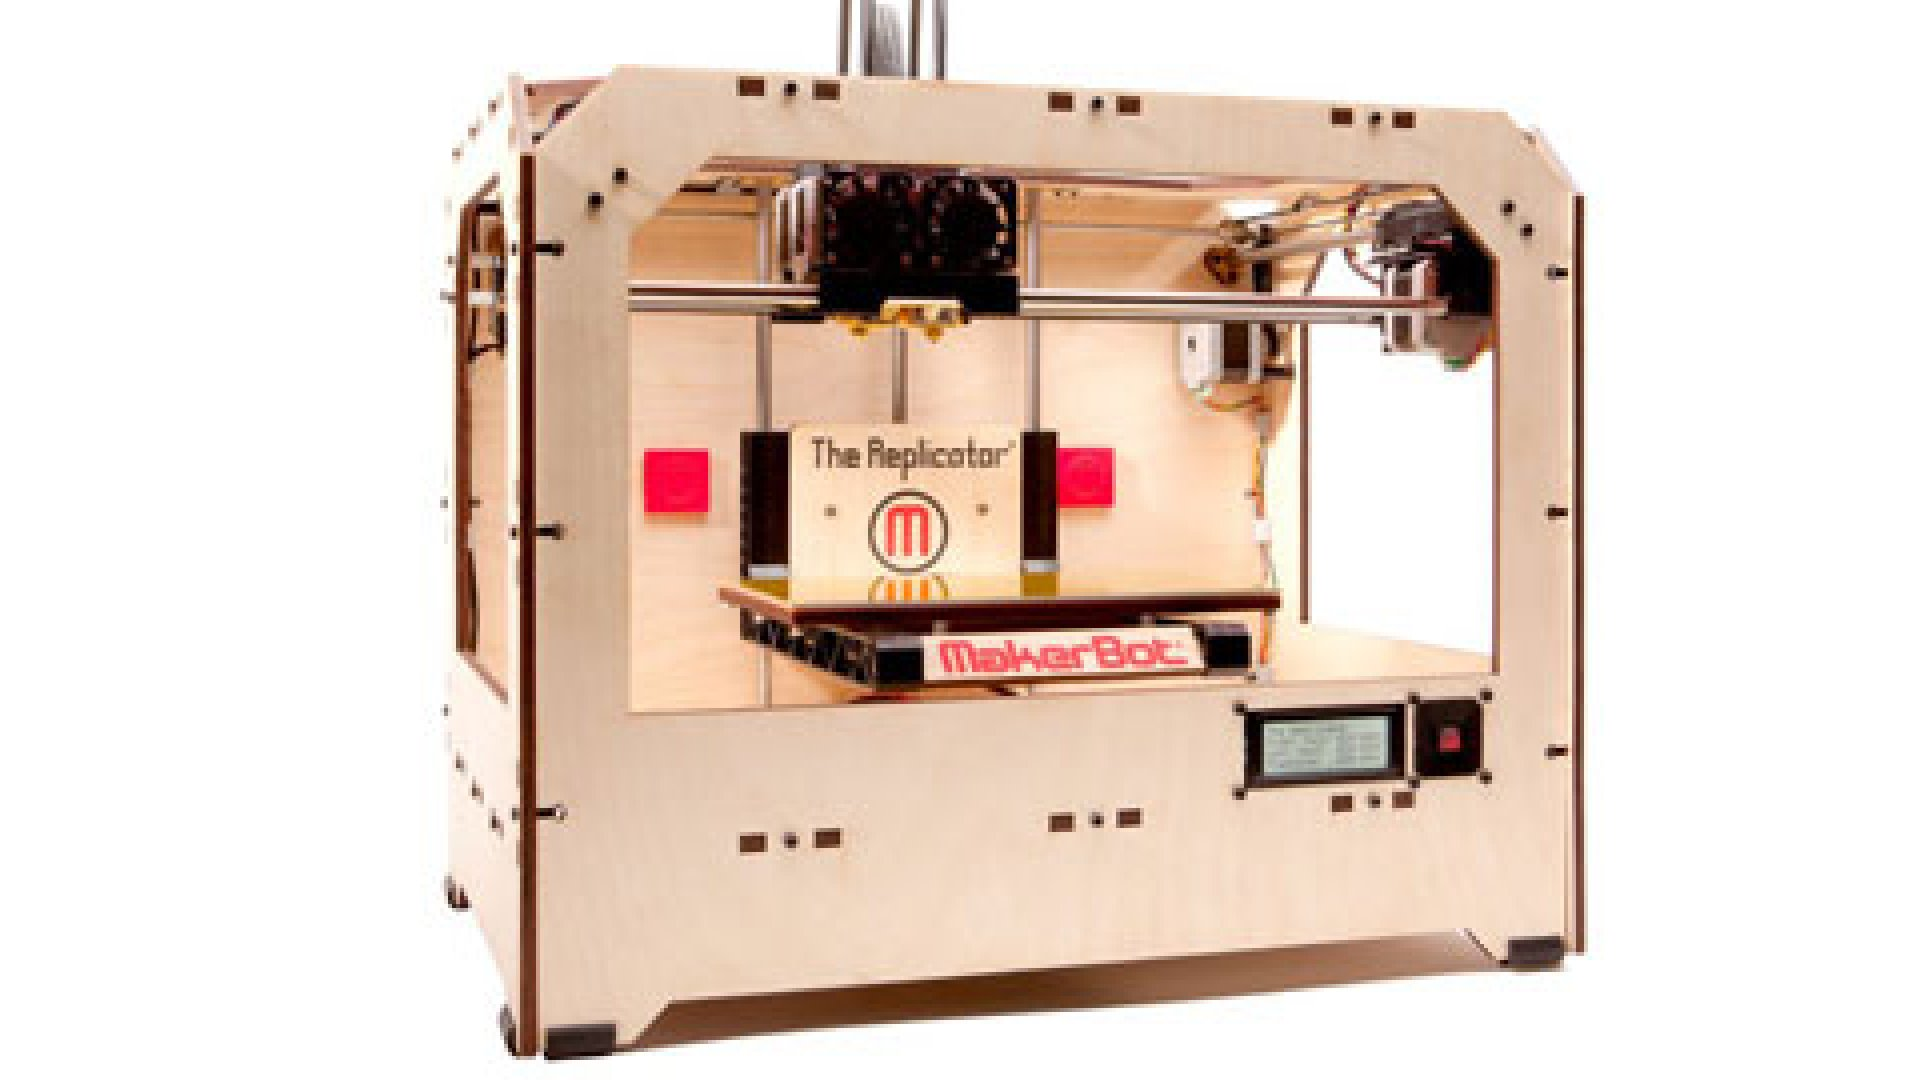 A LITTLE PIECE OF STAR TREK: Makerbot debuted its new 3D printer for consumers at the Consumer Electronics Show.